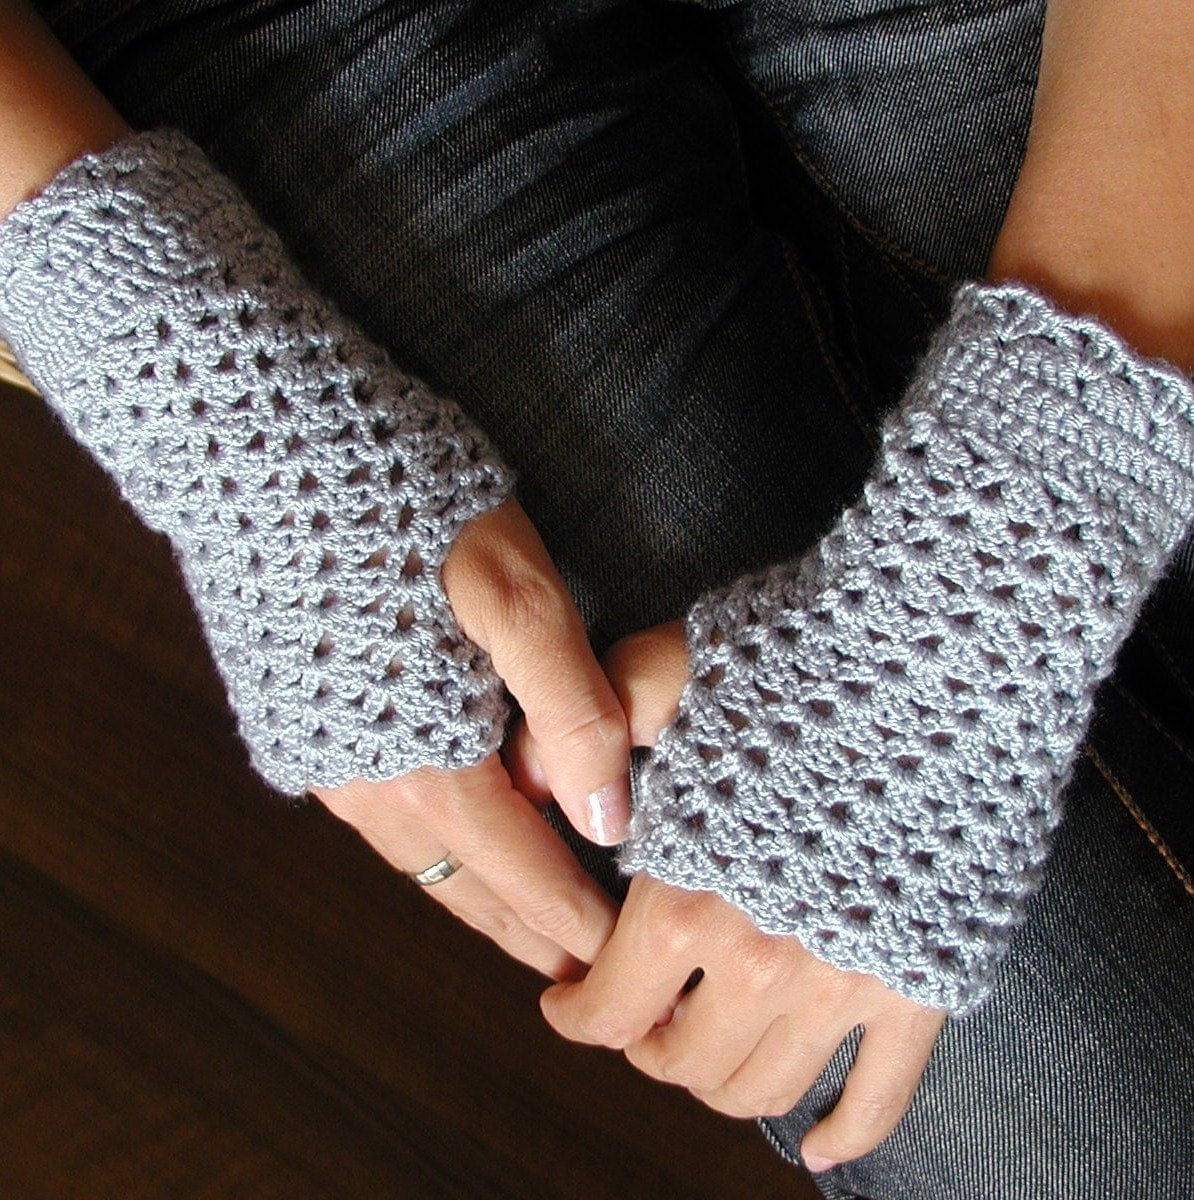 Crochet Gloves : Crocheted Fingerless Mittens PDF Crochet Pattern by FrougesArt